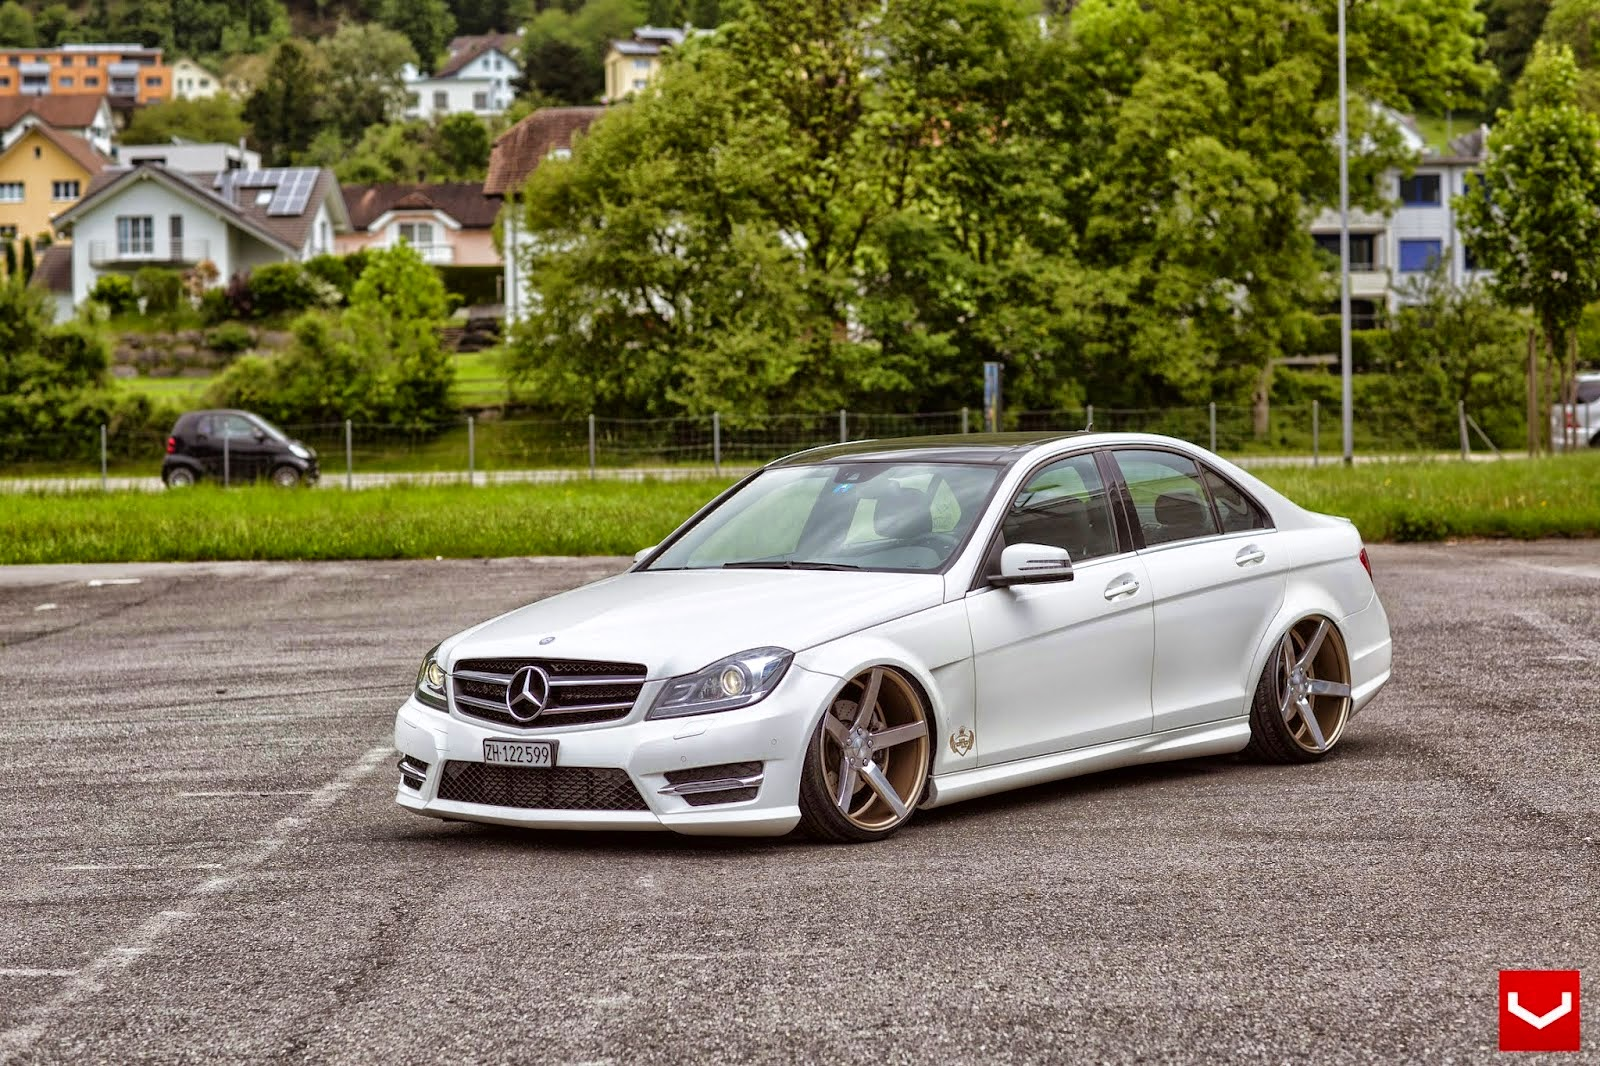 Mercedes Benz W204 C Class Stance Style Benztuning